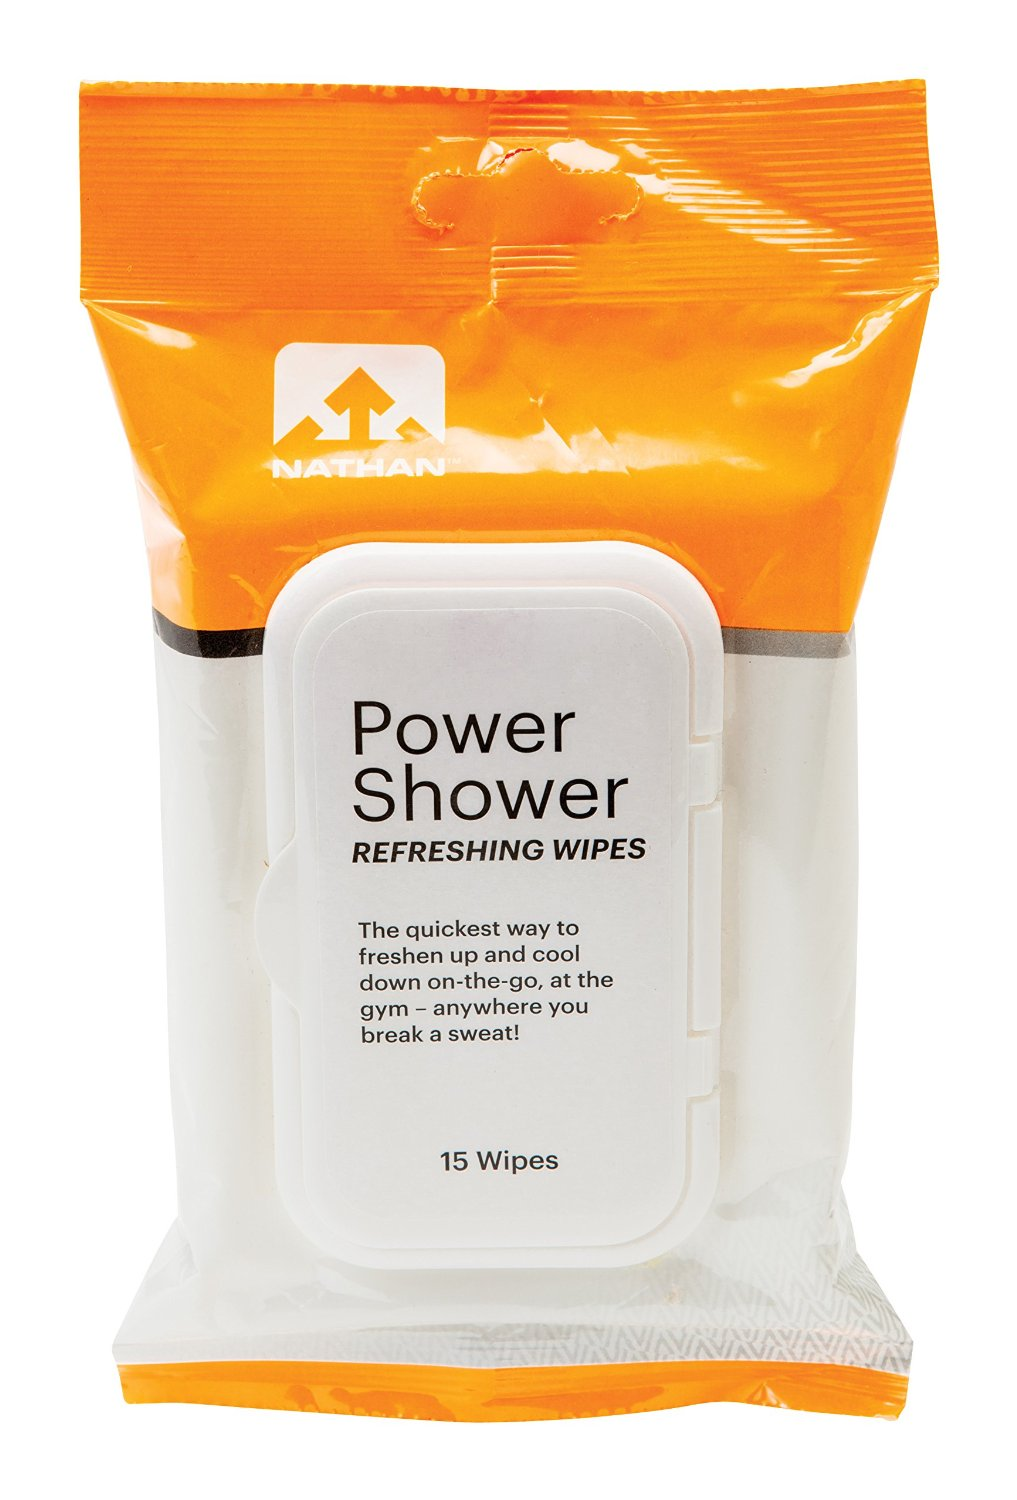 Nathan Body Wipes for Cleansing & Deodorizing after your Workout, Camping & Outdoors use, Refreshing Scent, Travel Size, 15 Count